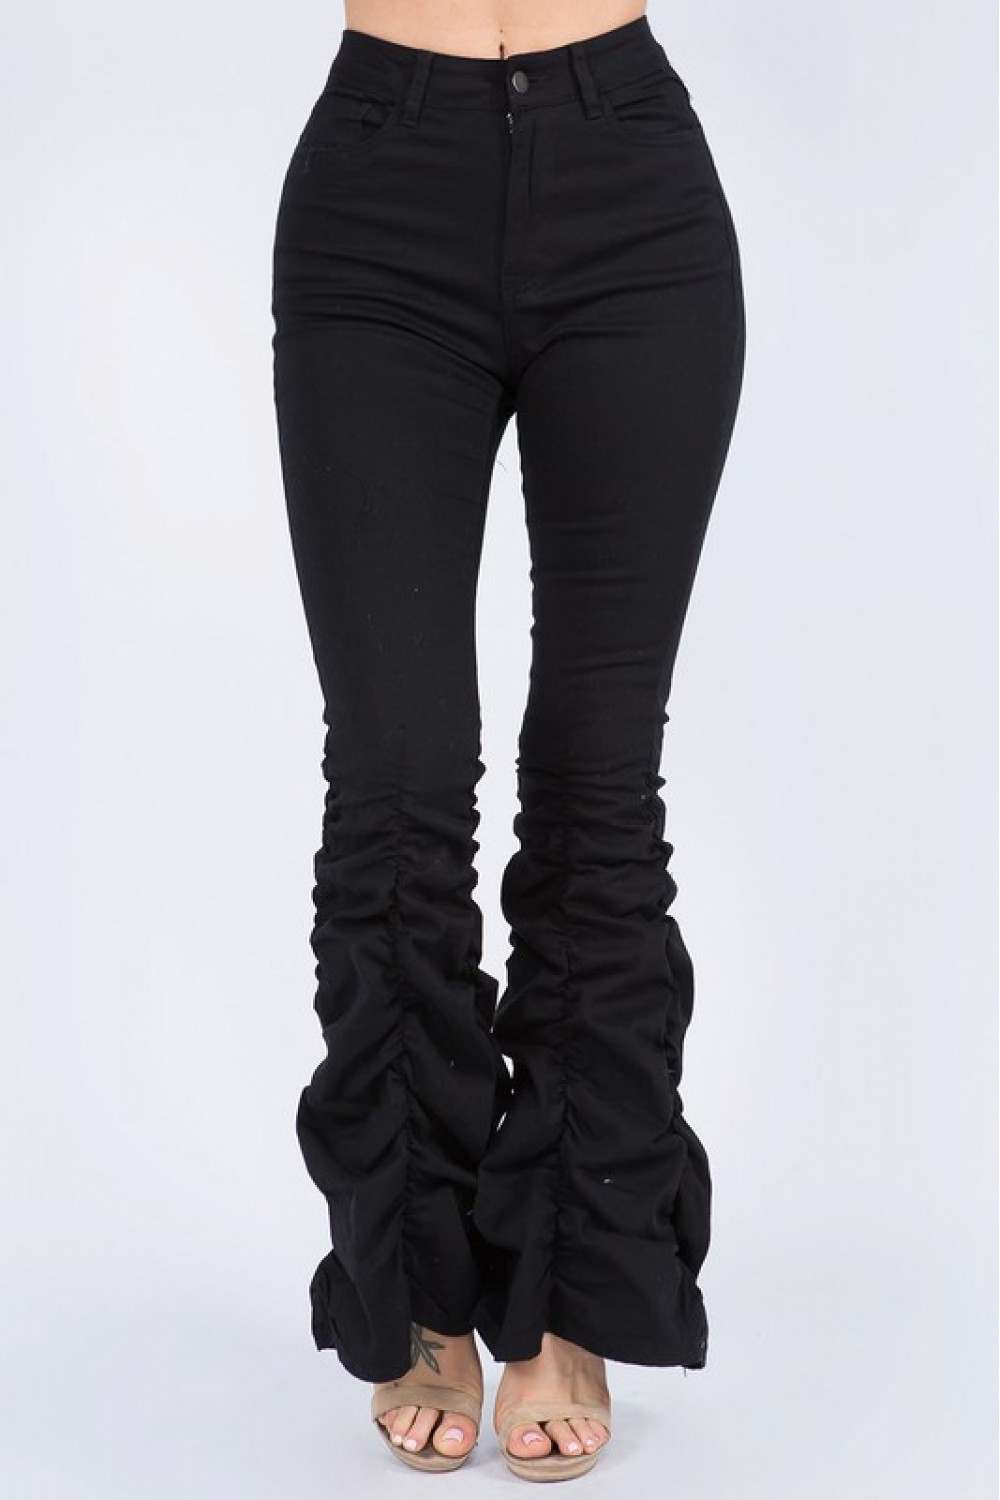 5TH1027<br/>Plus Size High Waist Shirred Bottom Jeans.